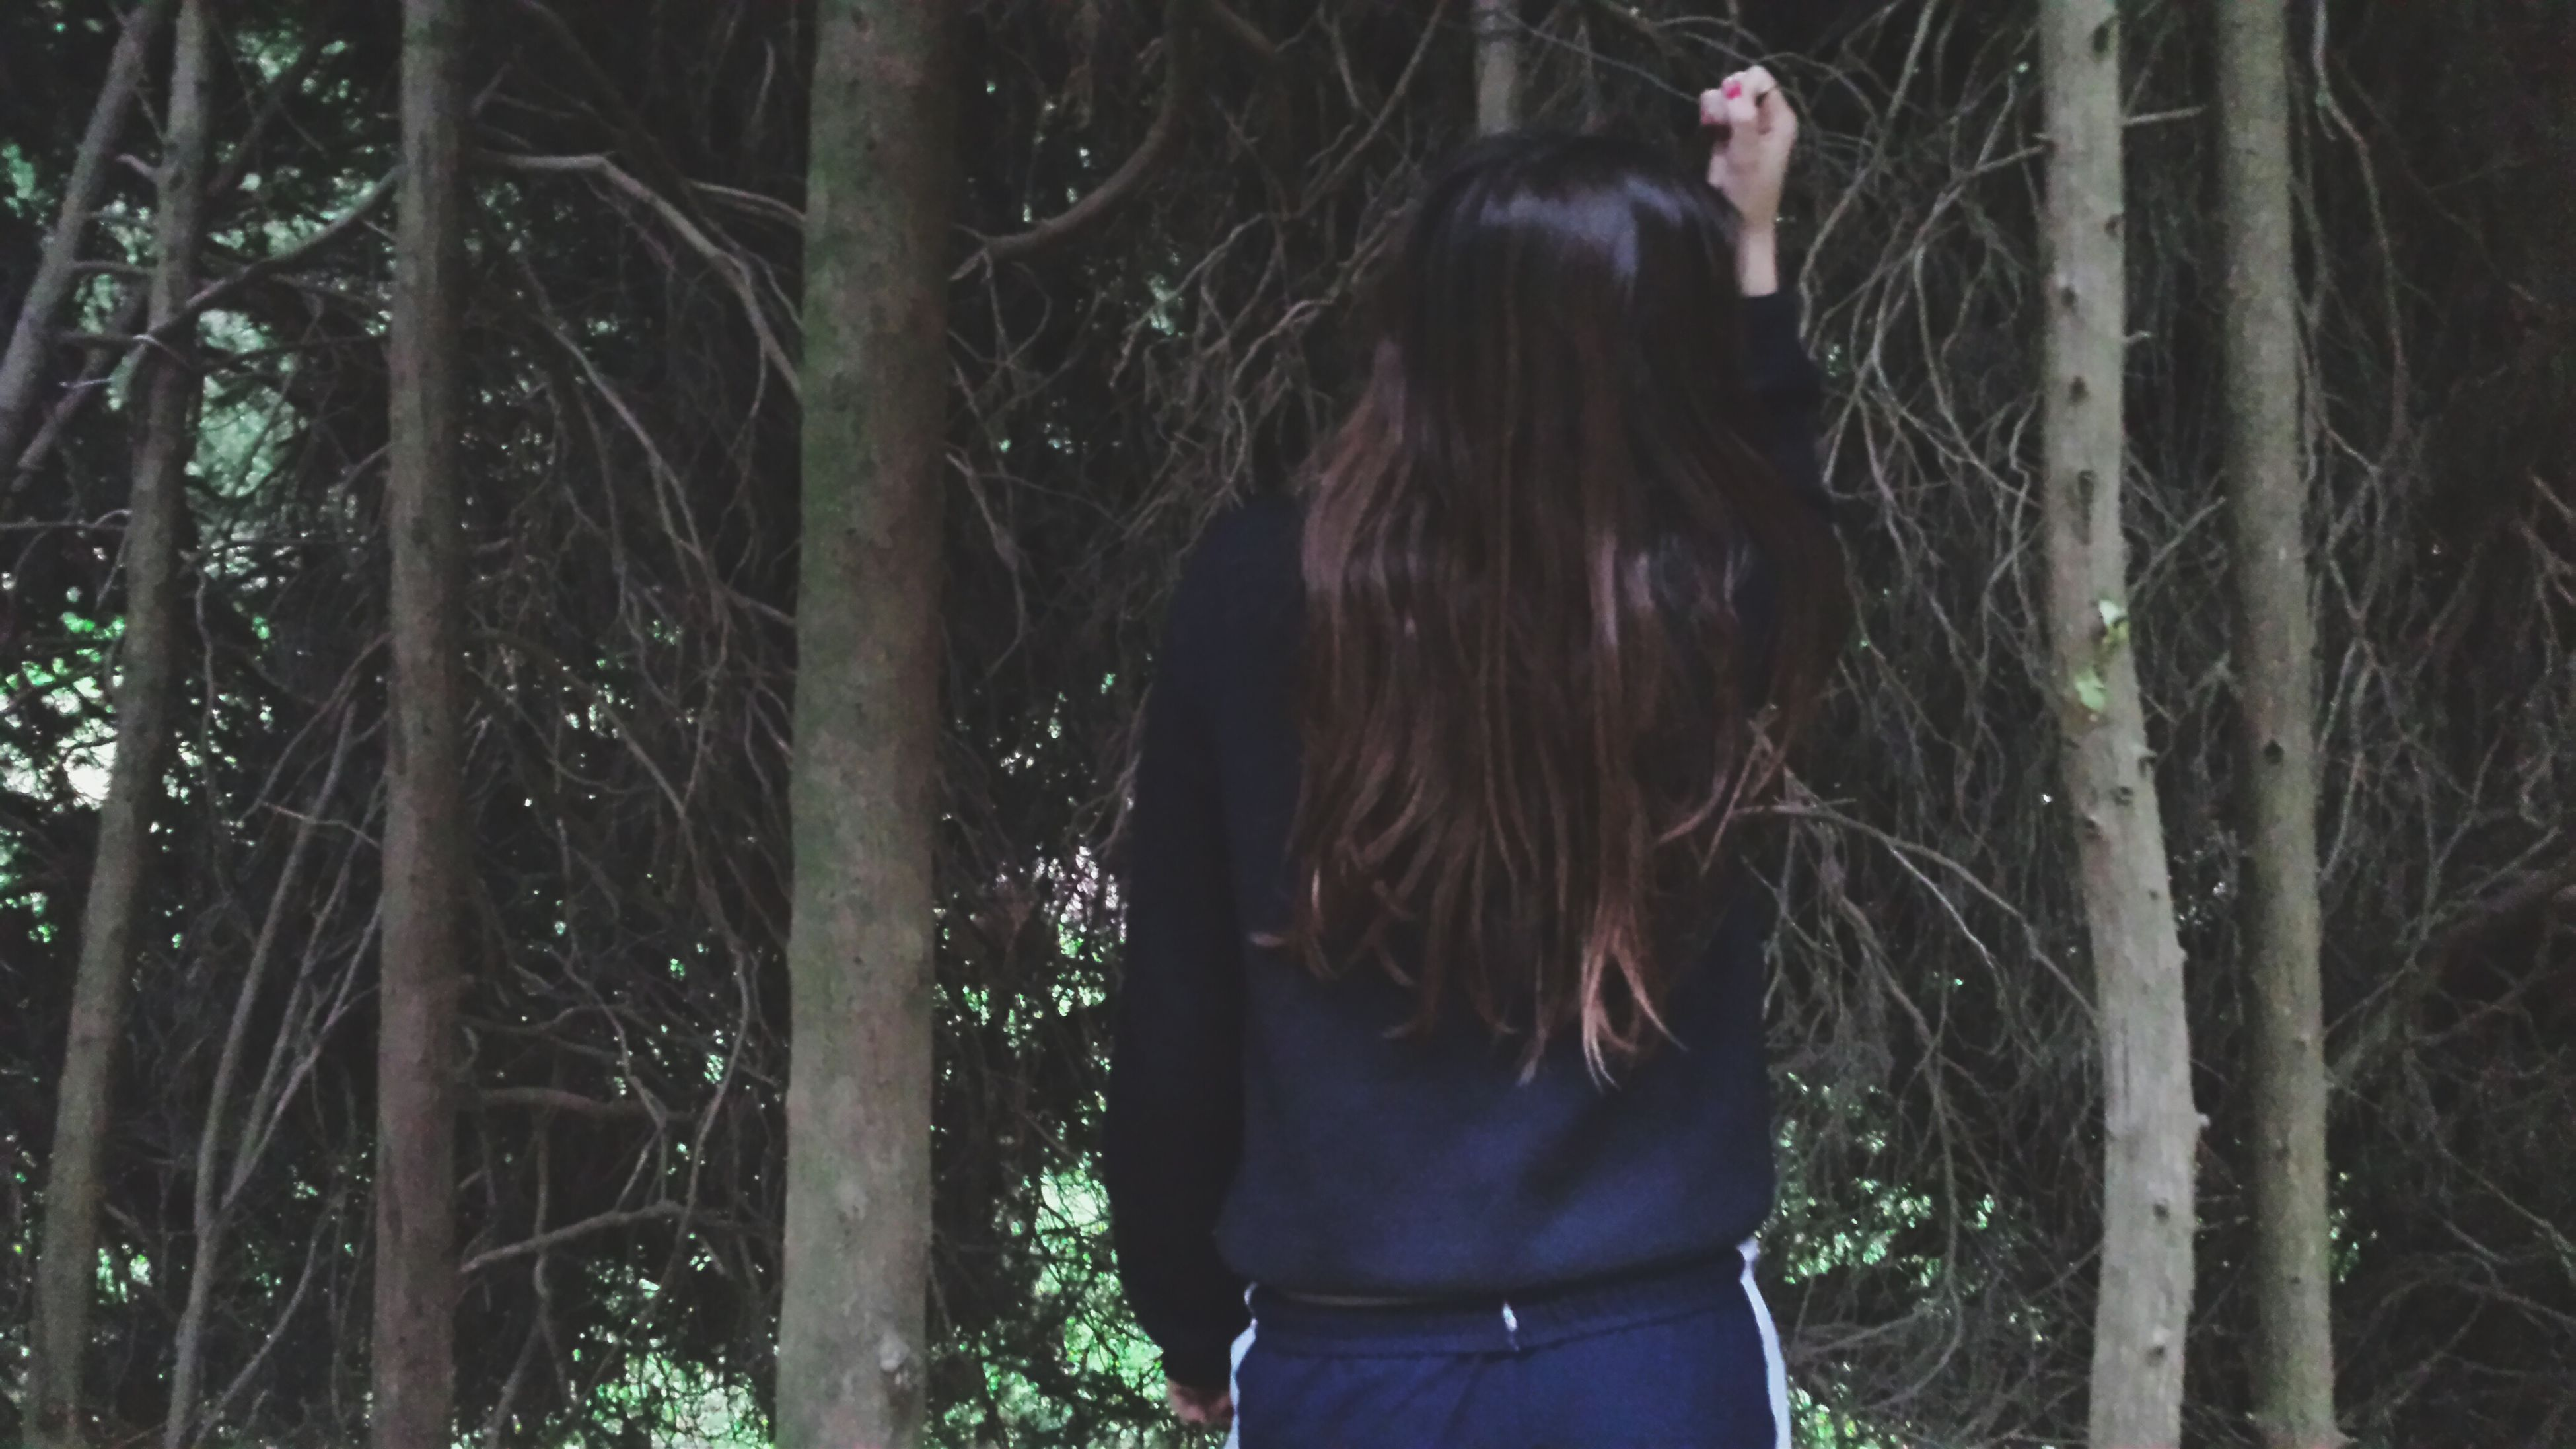 tree, standing, long hair, lifestyles, three quarter length, leisure activity, rear view, forest, sunlight, full length, side view, outdoors, mammal, young women, looking away, nature, day, young adult